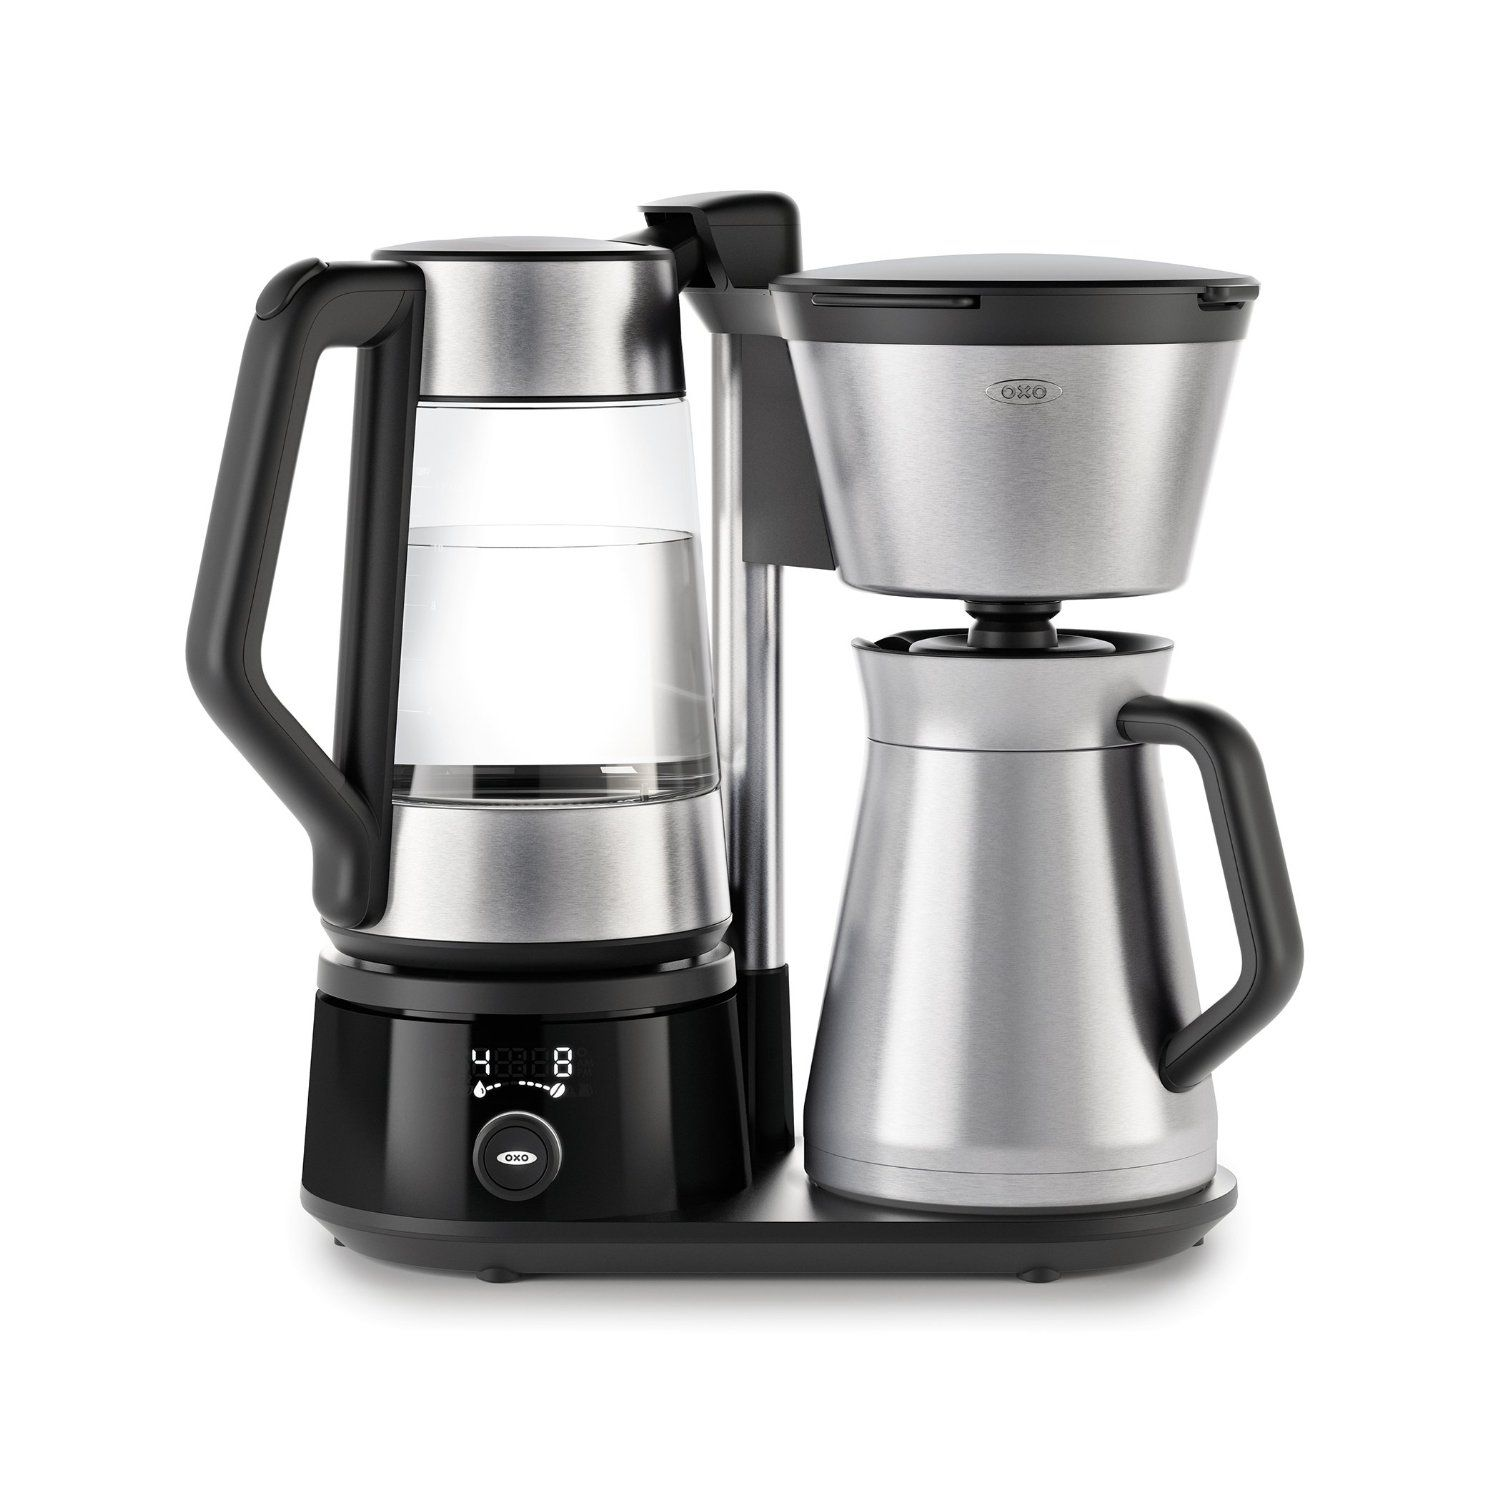 Update the best coffee maker for most people is the hamilton